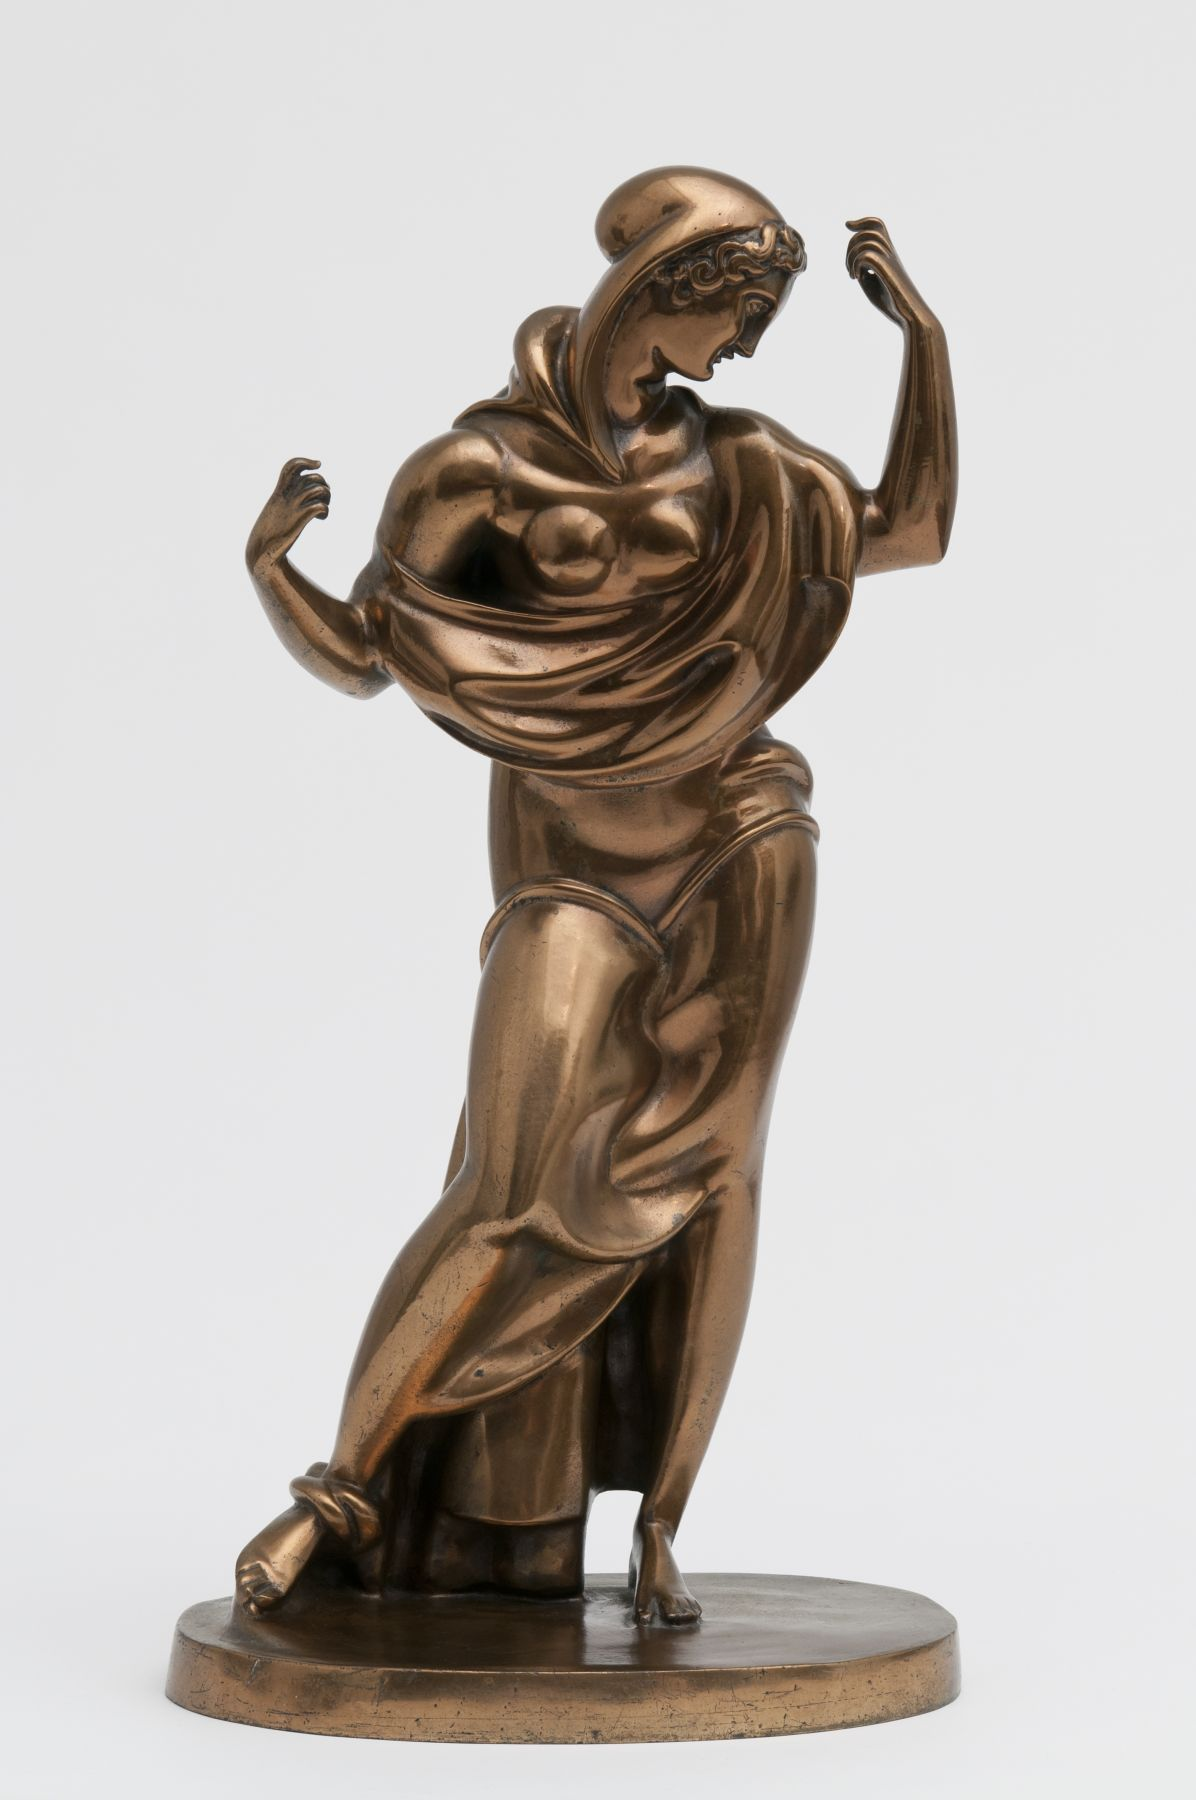 Elie Nadelman, Femme Drapée, 1912, cast c. 1925, polished bronze, 22 1/4 h x 11 1/2 w x 8 d inches